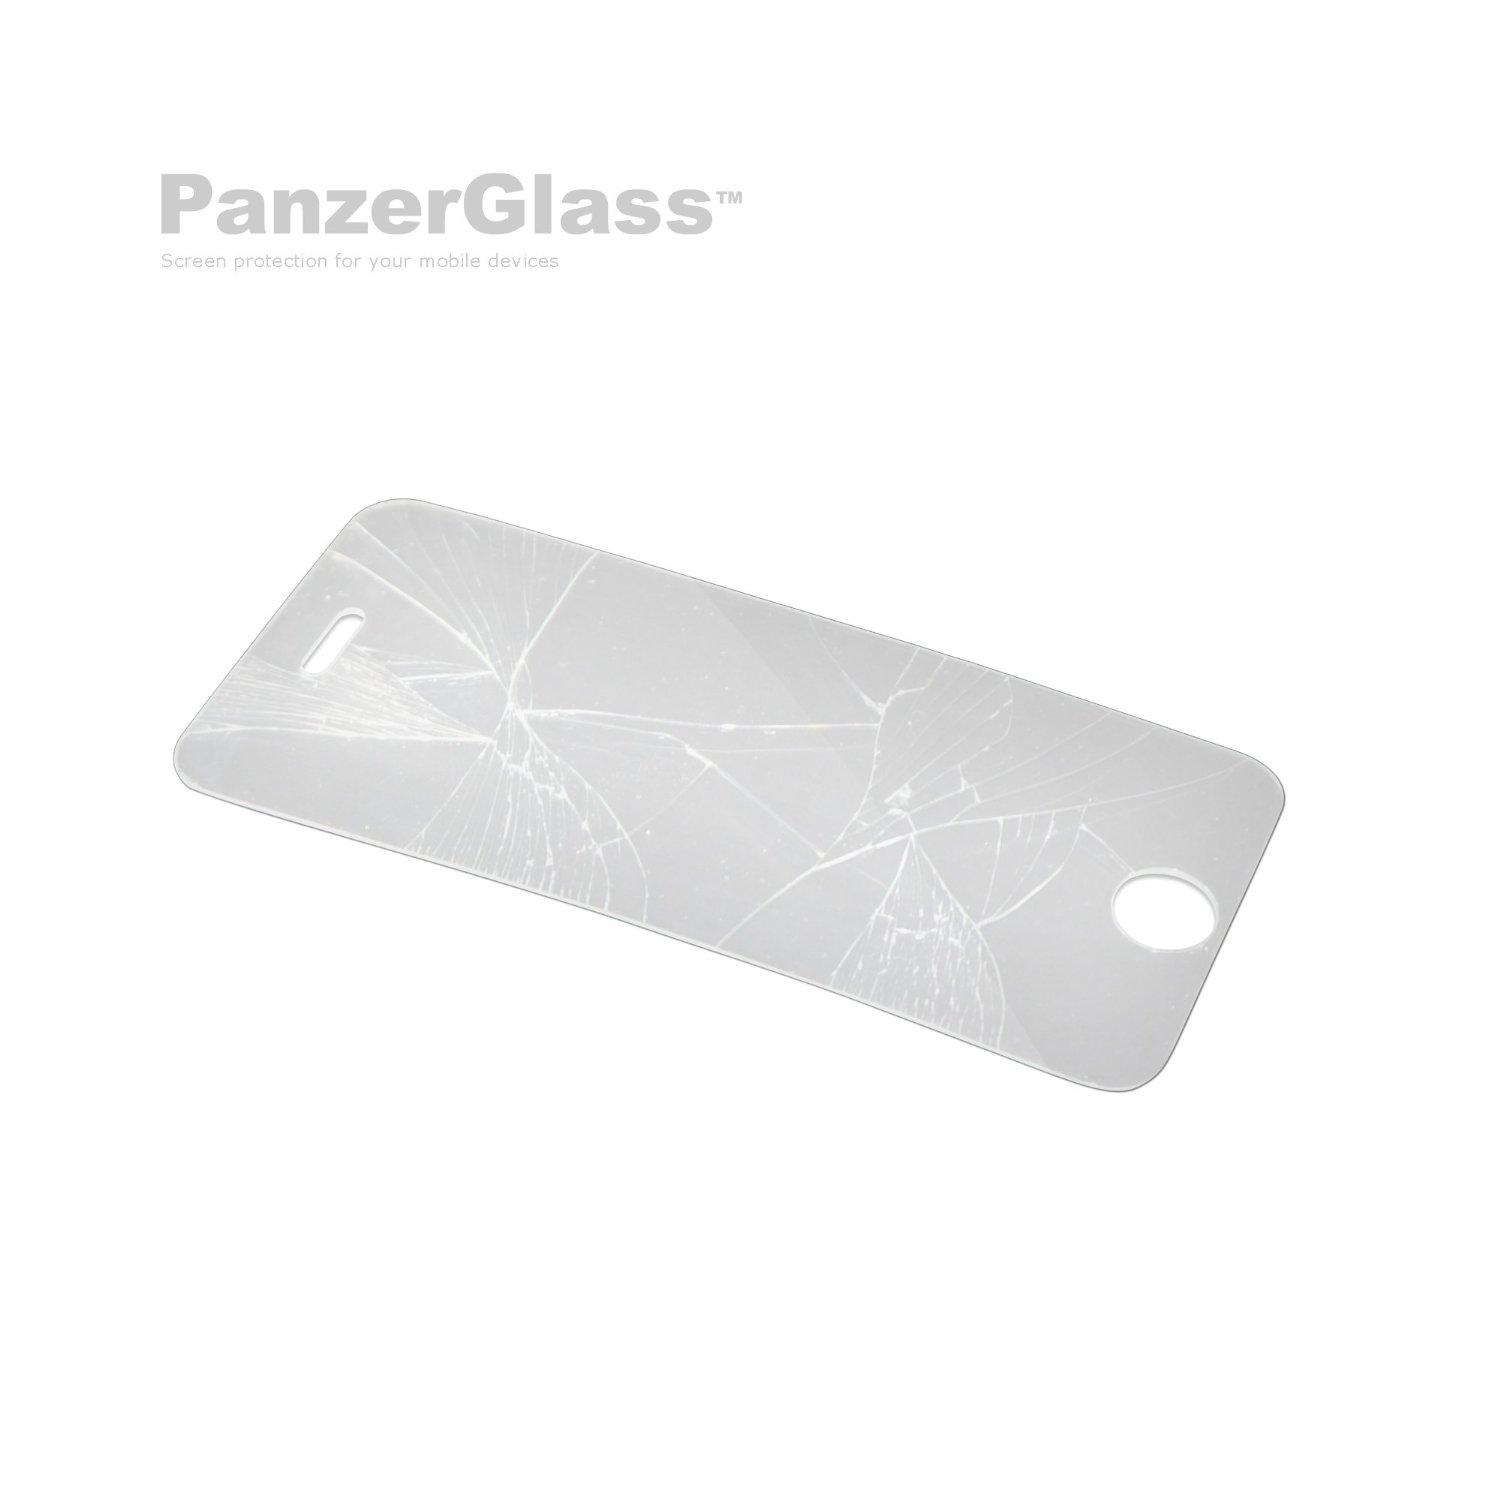 PanzerGlass iPhone 6S Plus/6 Plus Privacy Glass